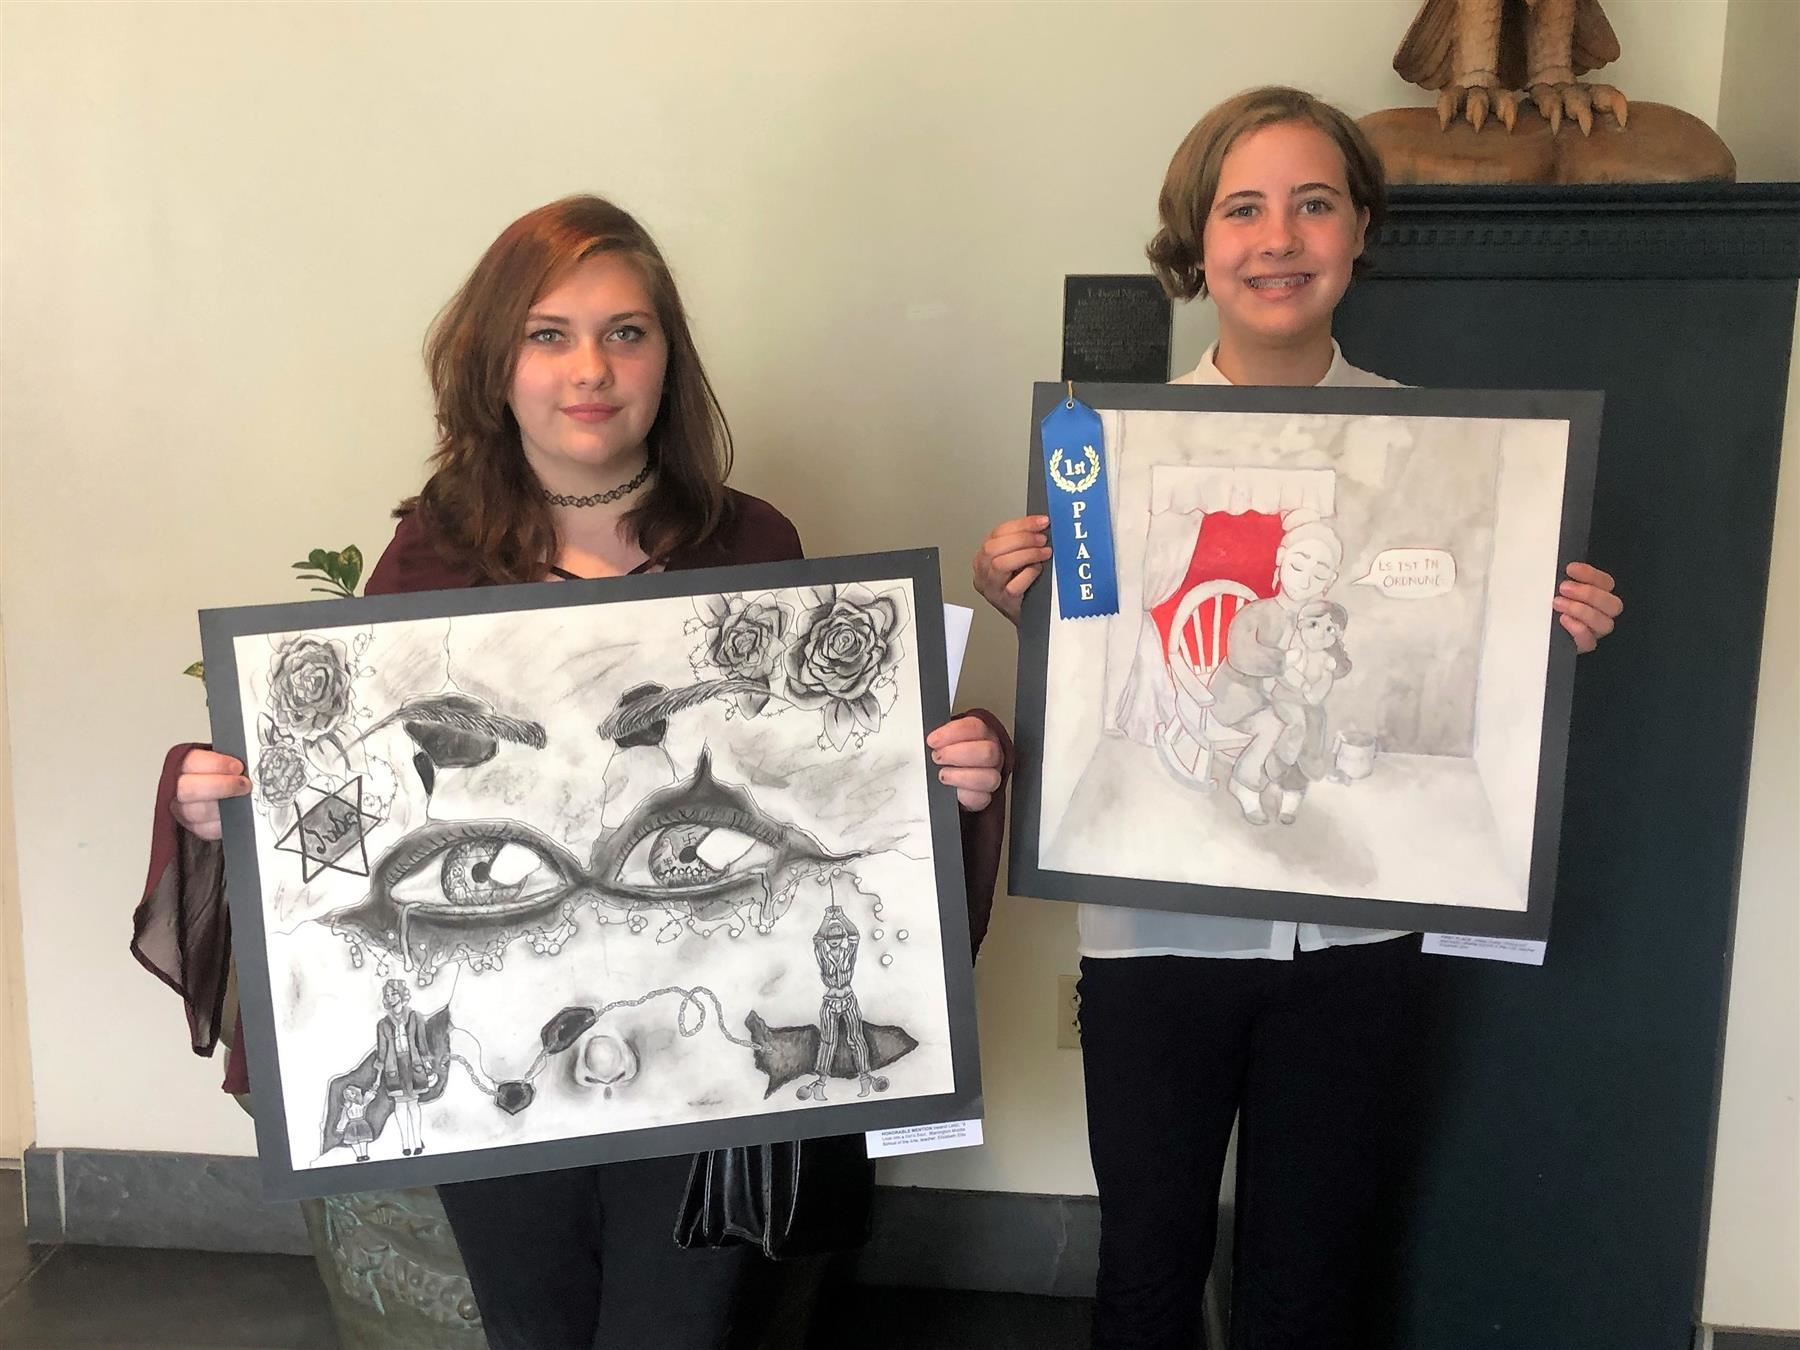 Holocaust Creative Arts Contest: Congratulations Ireland Letizi (7th grade) honorable mention and Abbey Szala (8th grade) first place middle school winner for this year's Holocaust Creative Arts contest. The theme this year was Woman during the Holocaust.